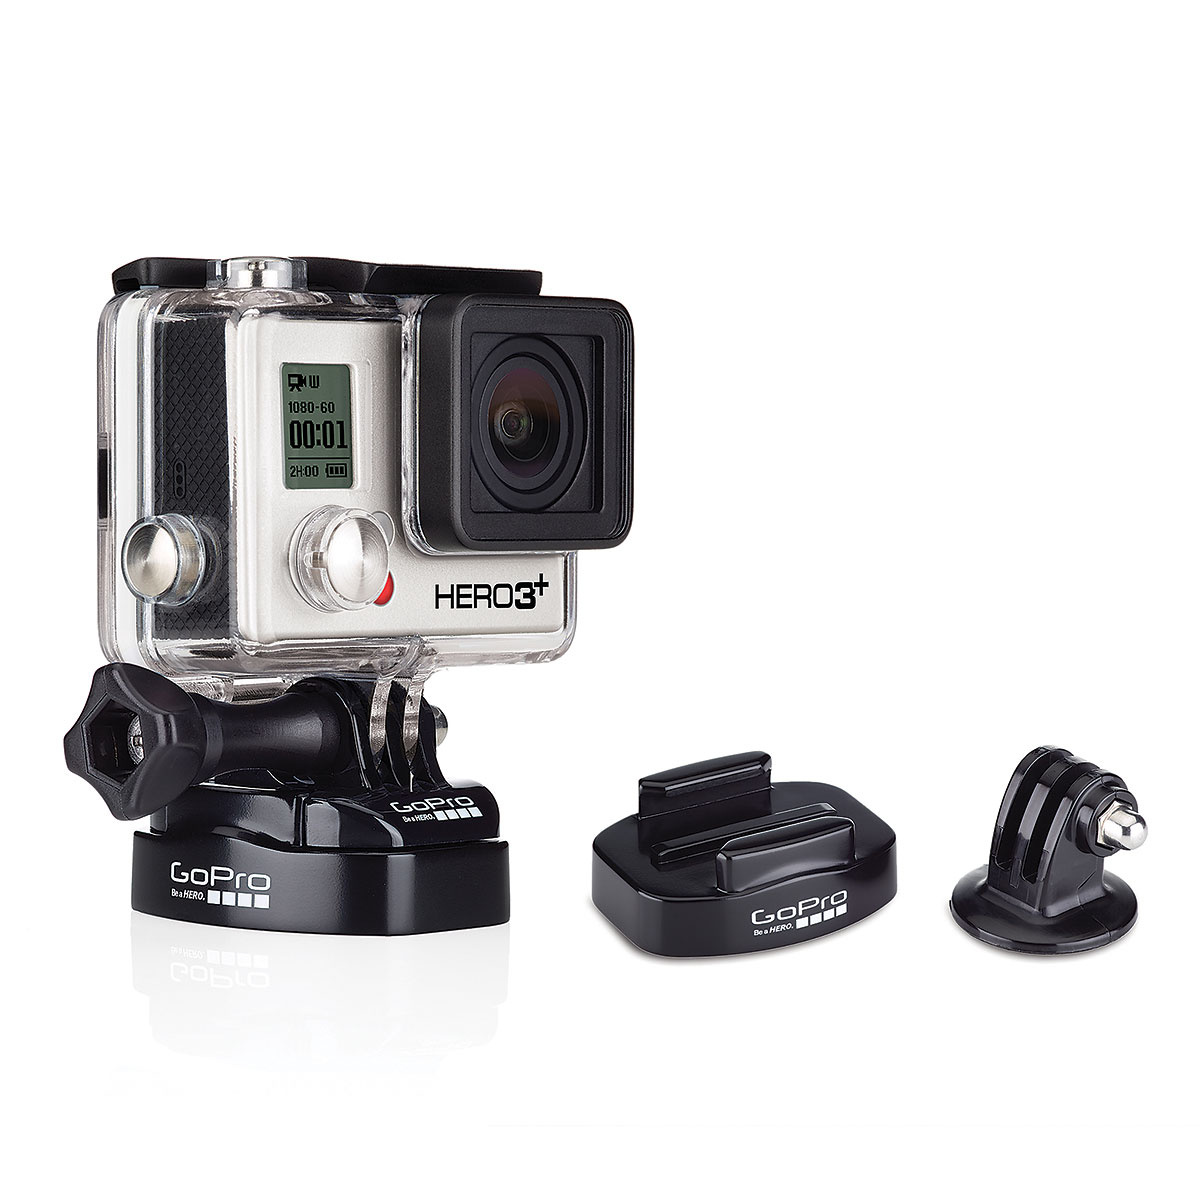 gopro fixation pour tr pied accessoires cam ra sportive gopro sur. Black Bedroom Furniture Sets. Home Design Ideas